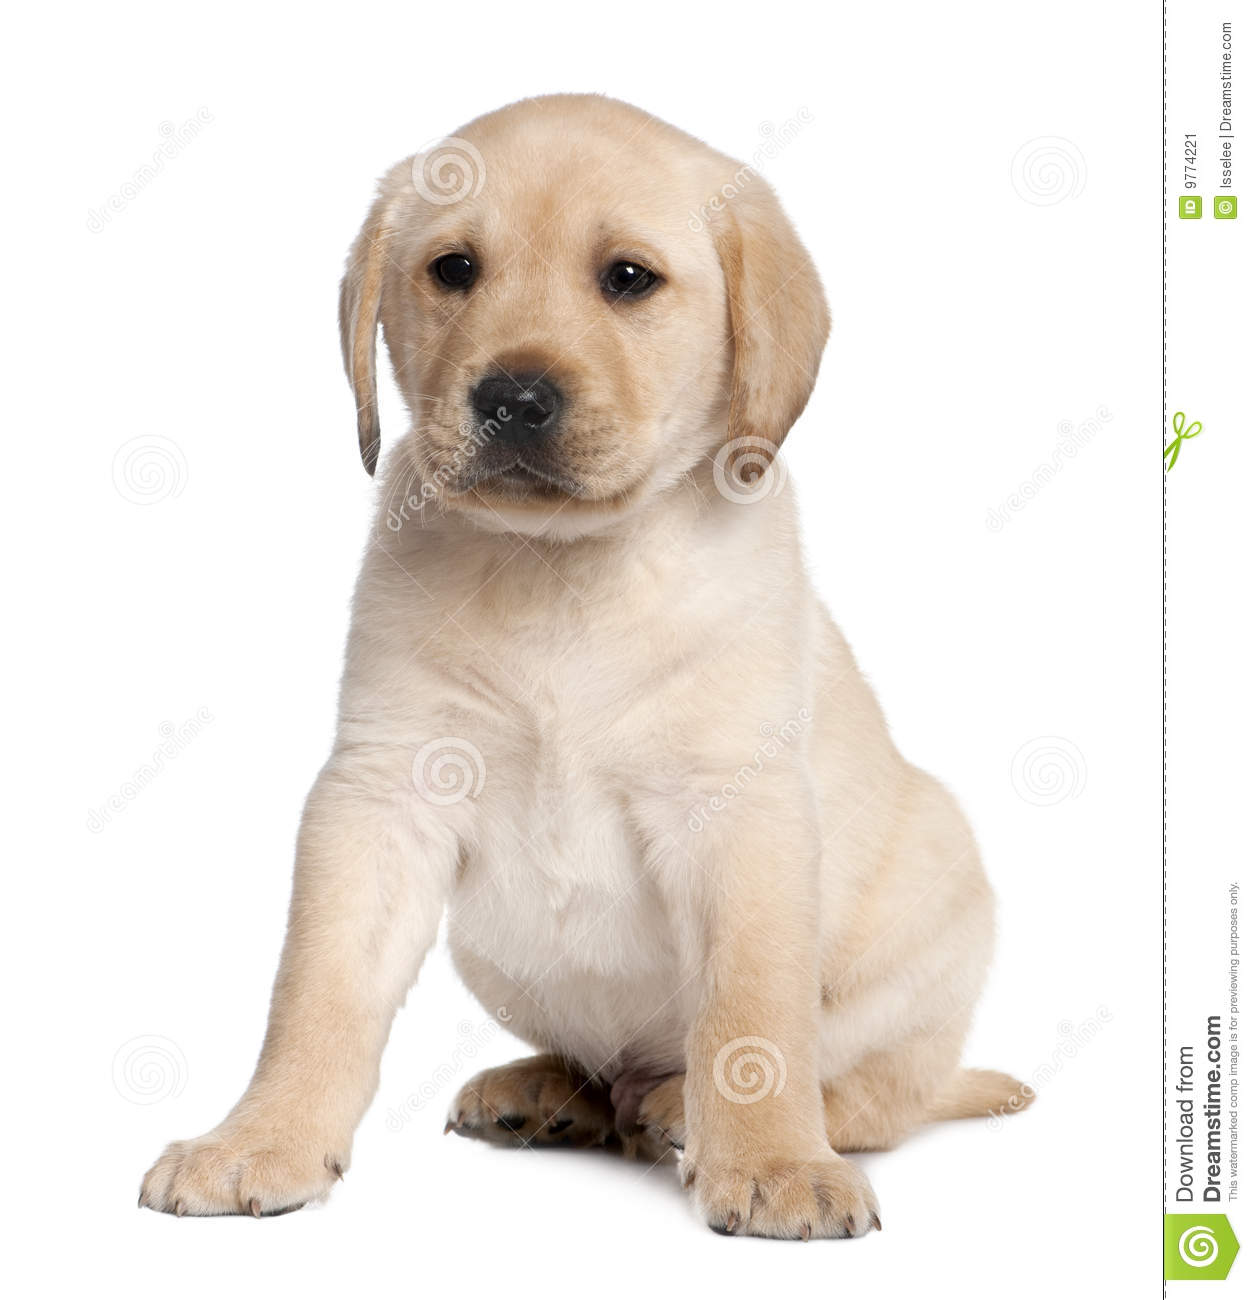 Labrador Puppy 6 Weeks Old Stock Image Image Of Doggy Isolated 9774221